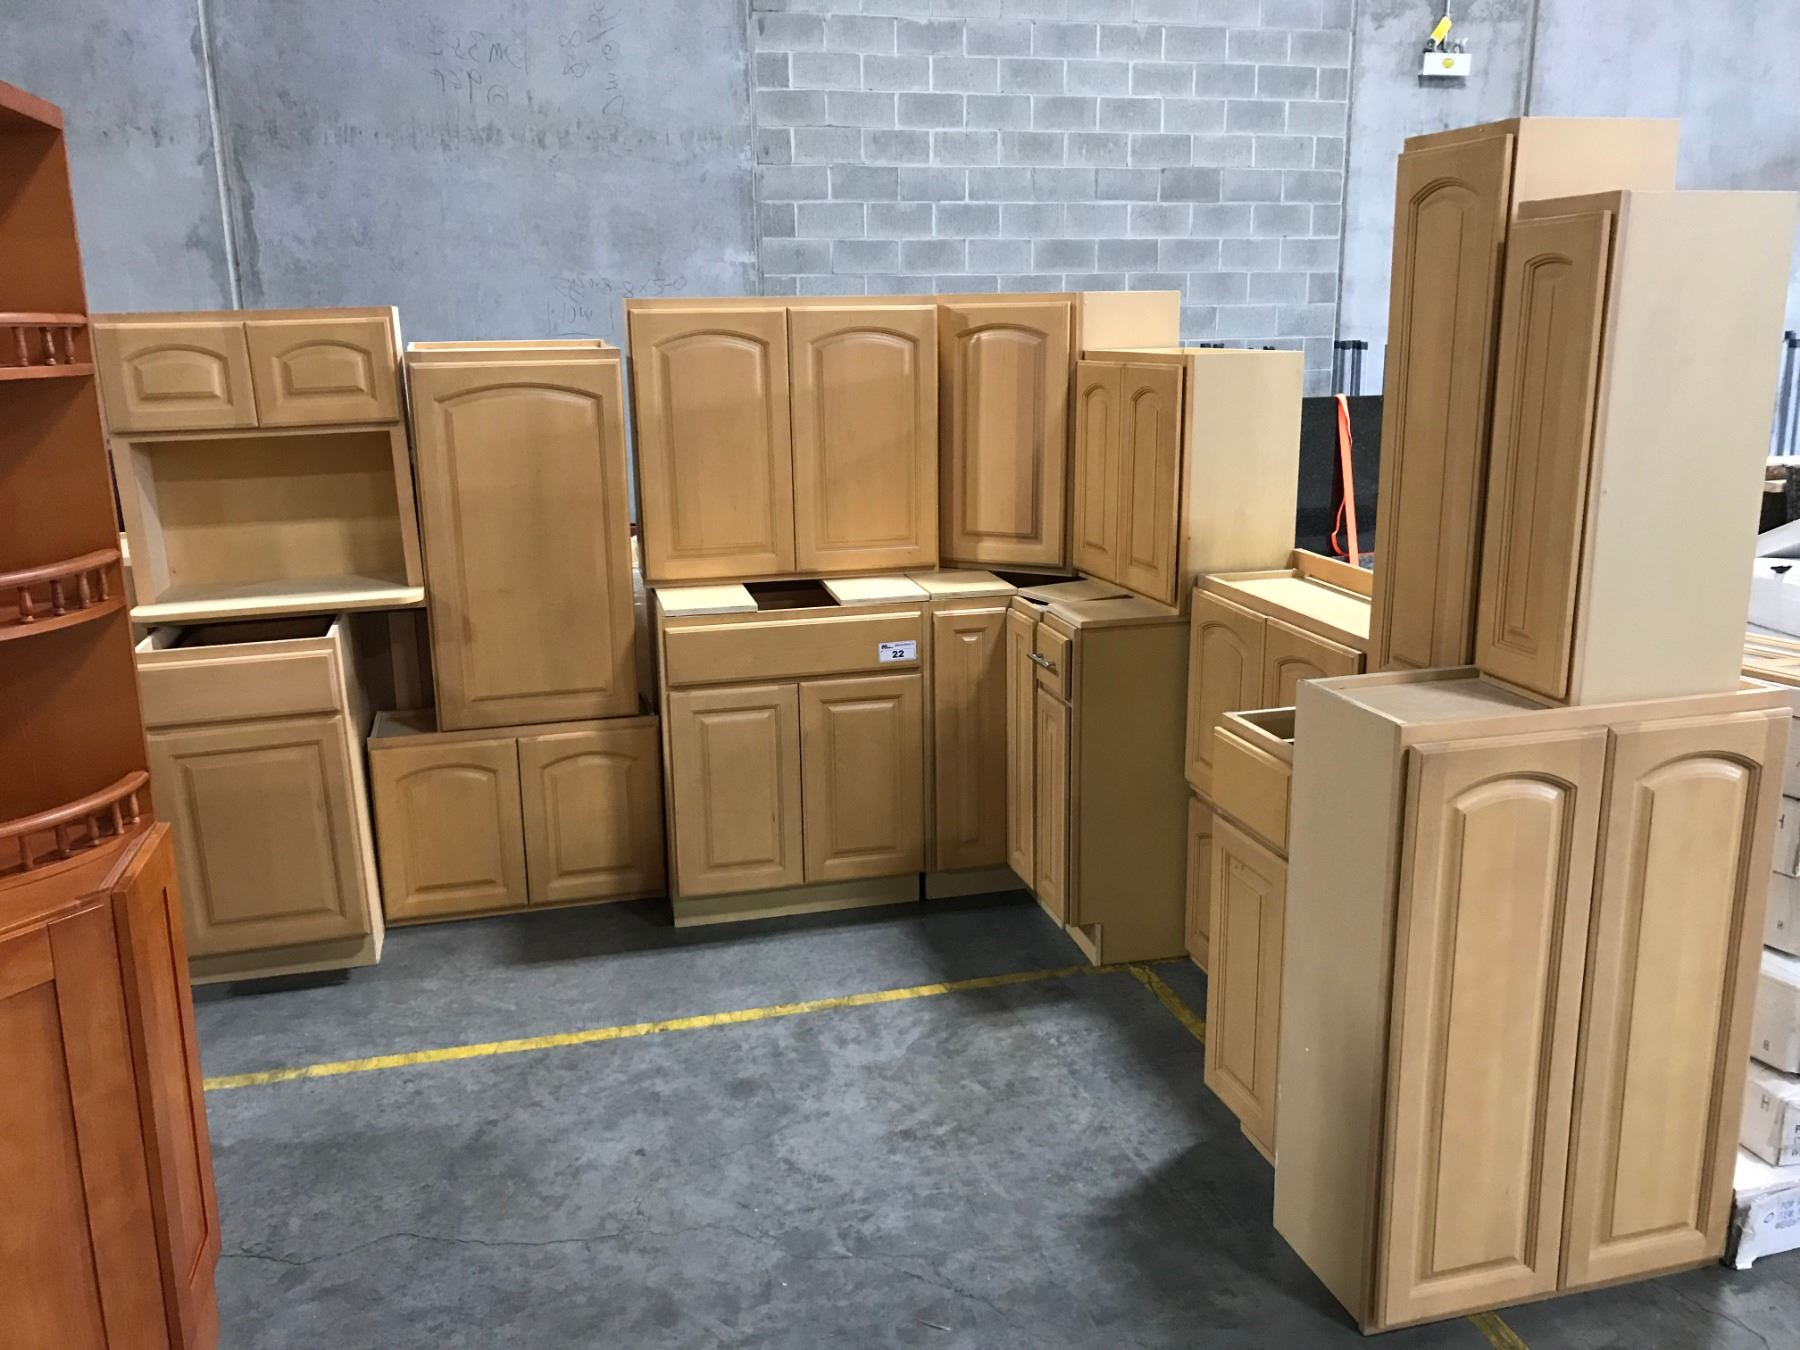 19 Piece Maple Kitchen Cabinet Set Inc 7 Bottom Cabinets 10 Top Cabinets 2 Microwave Able Auctions